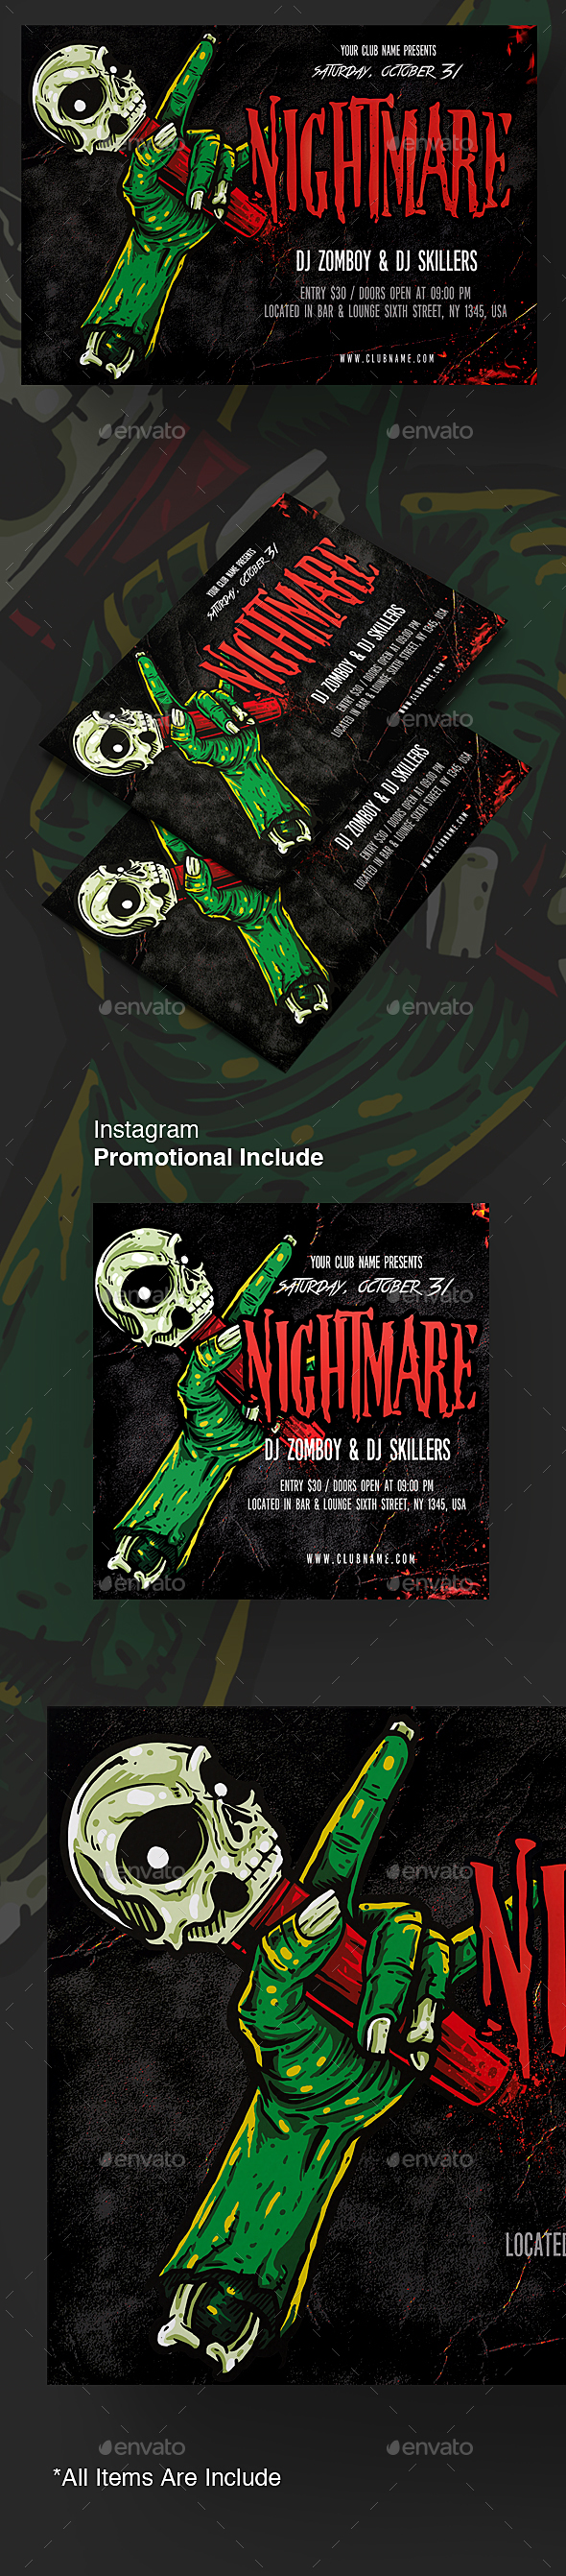 Nightmare Halloween Flyer Template - Holidays Events